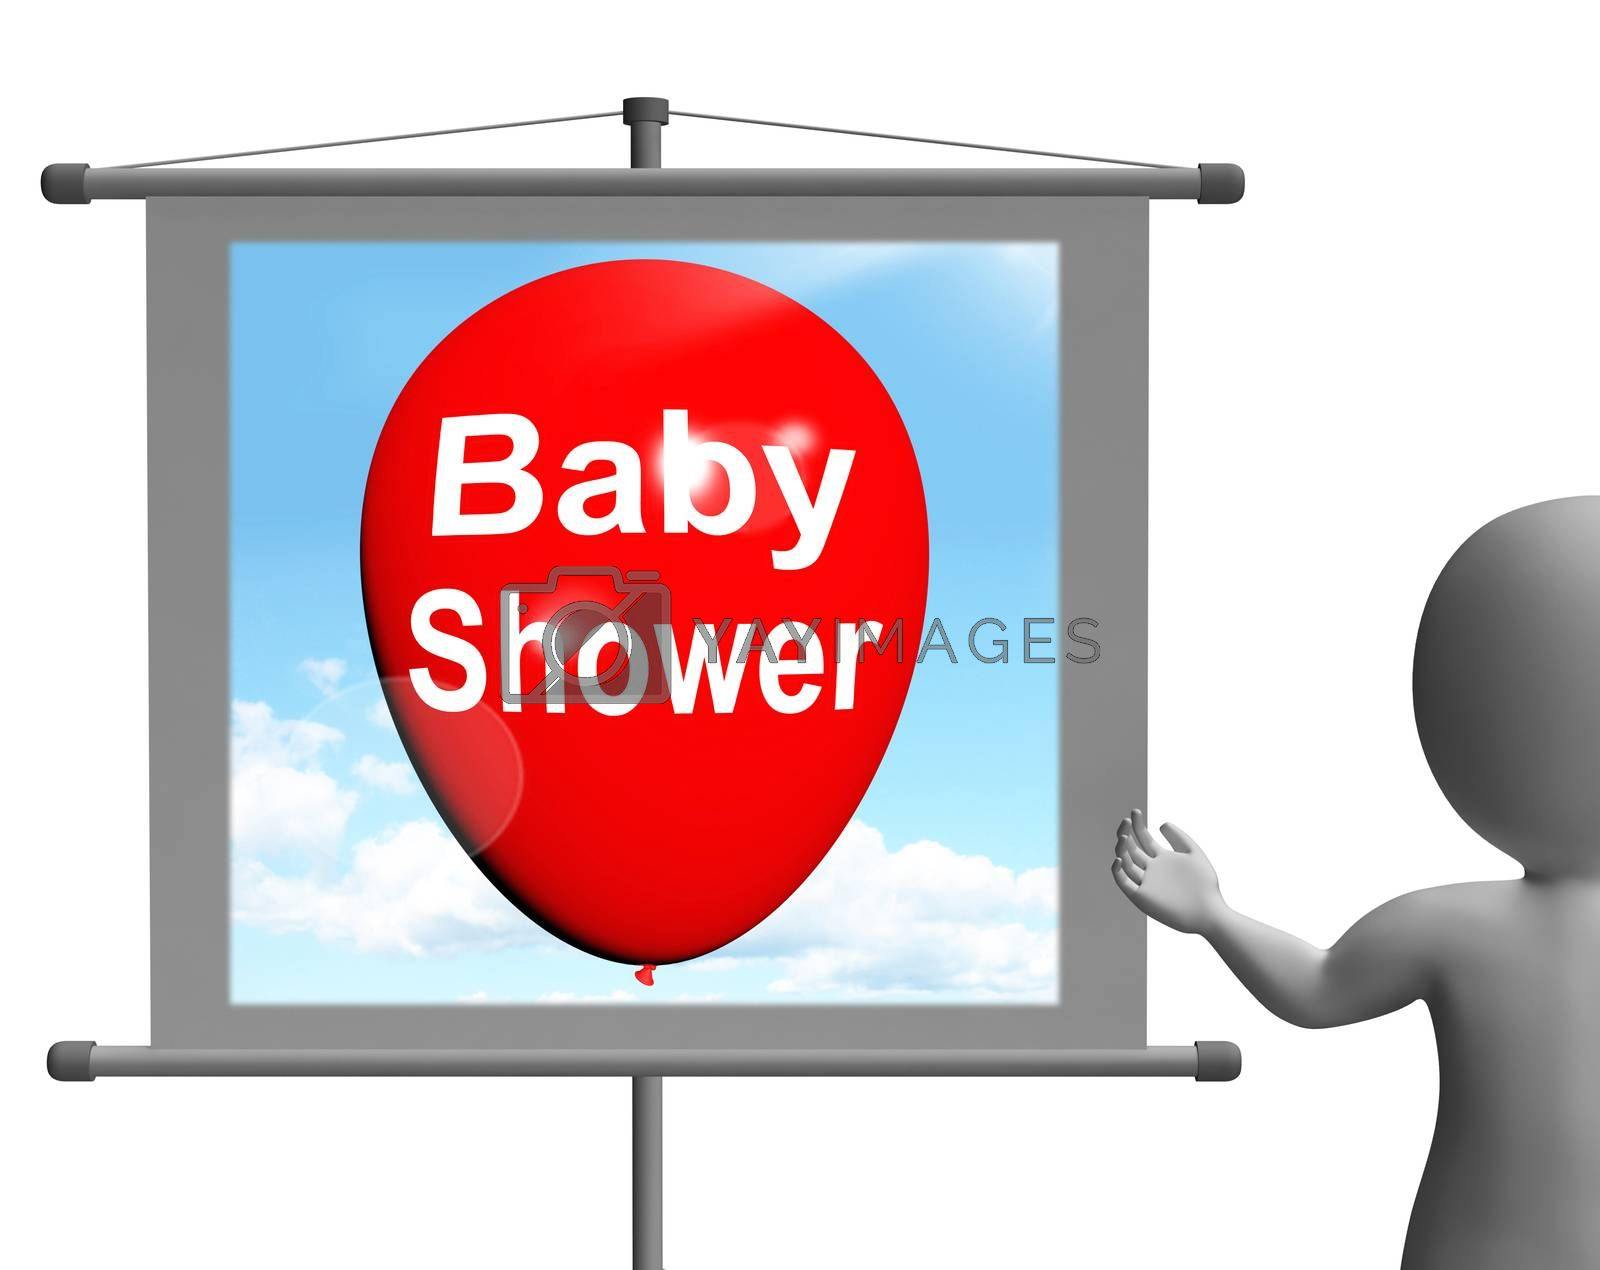 Baby Shower Sign Showing Cheerful Festivities and Parties